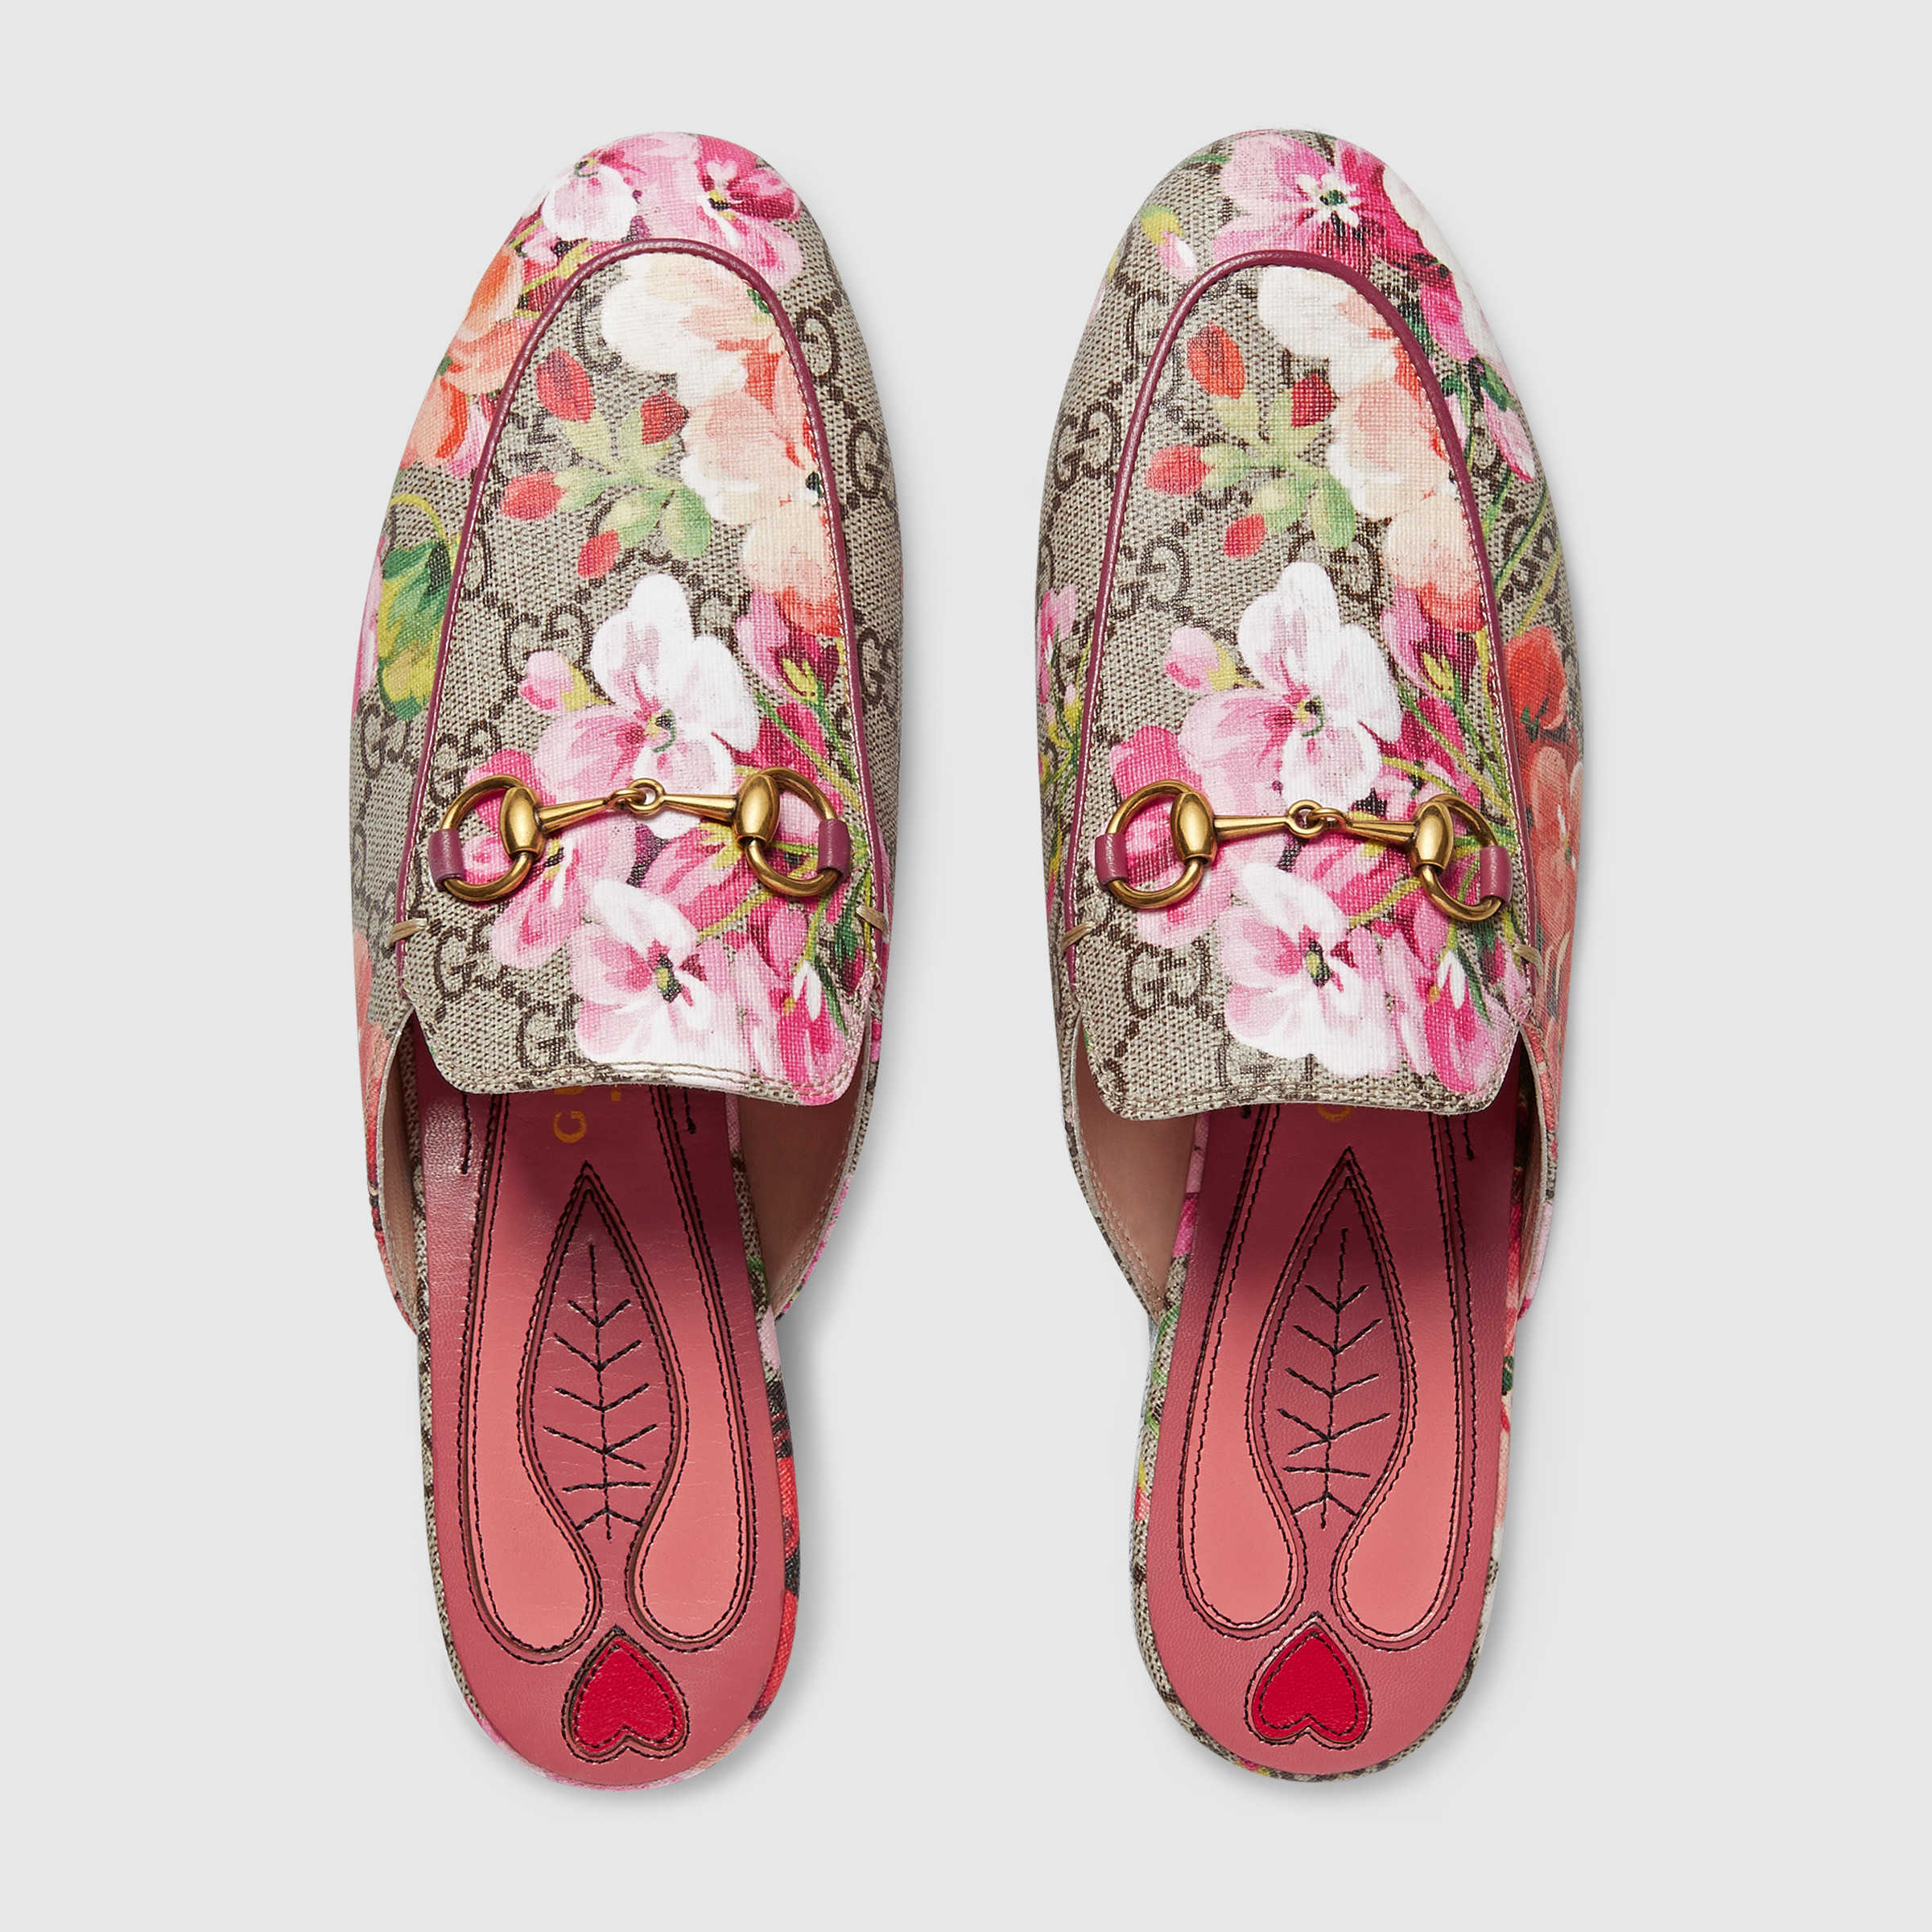 princetown-gg-blooms-slipper-695_